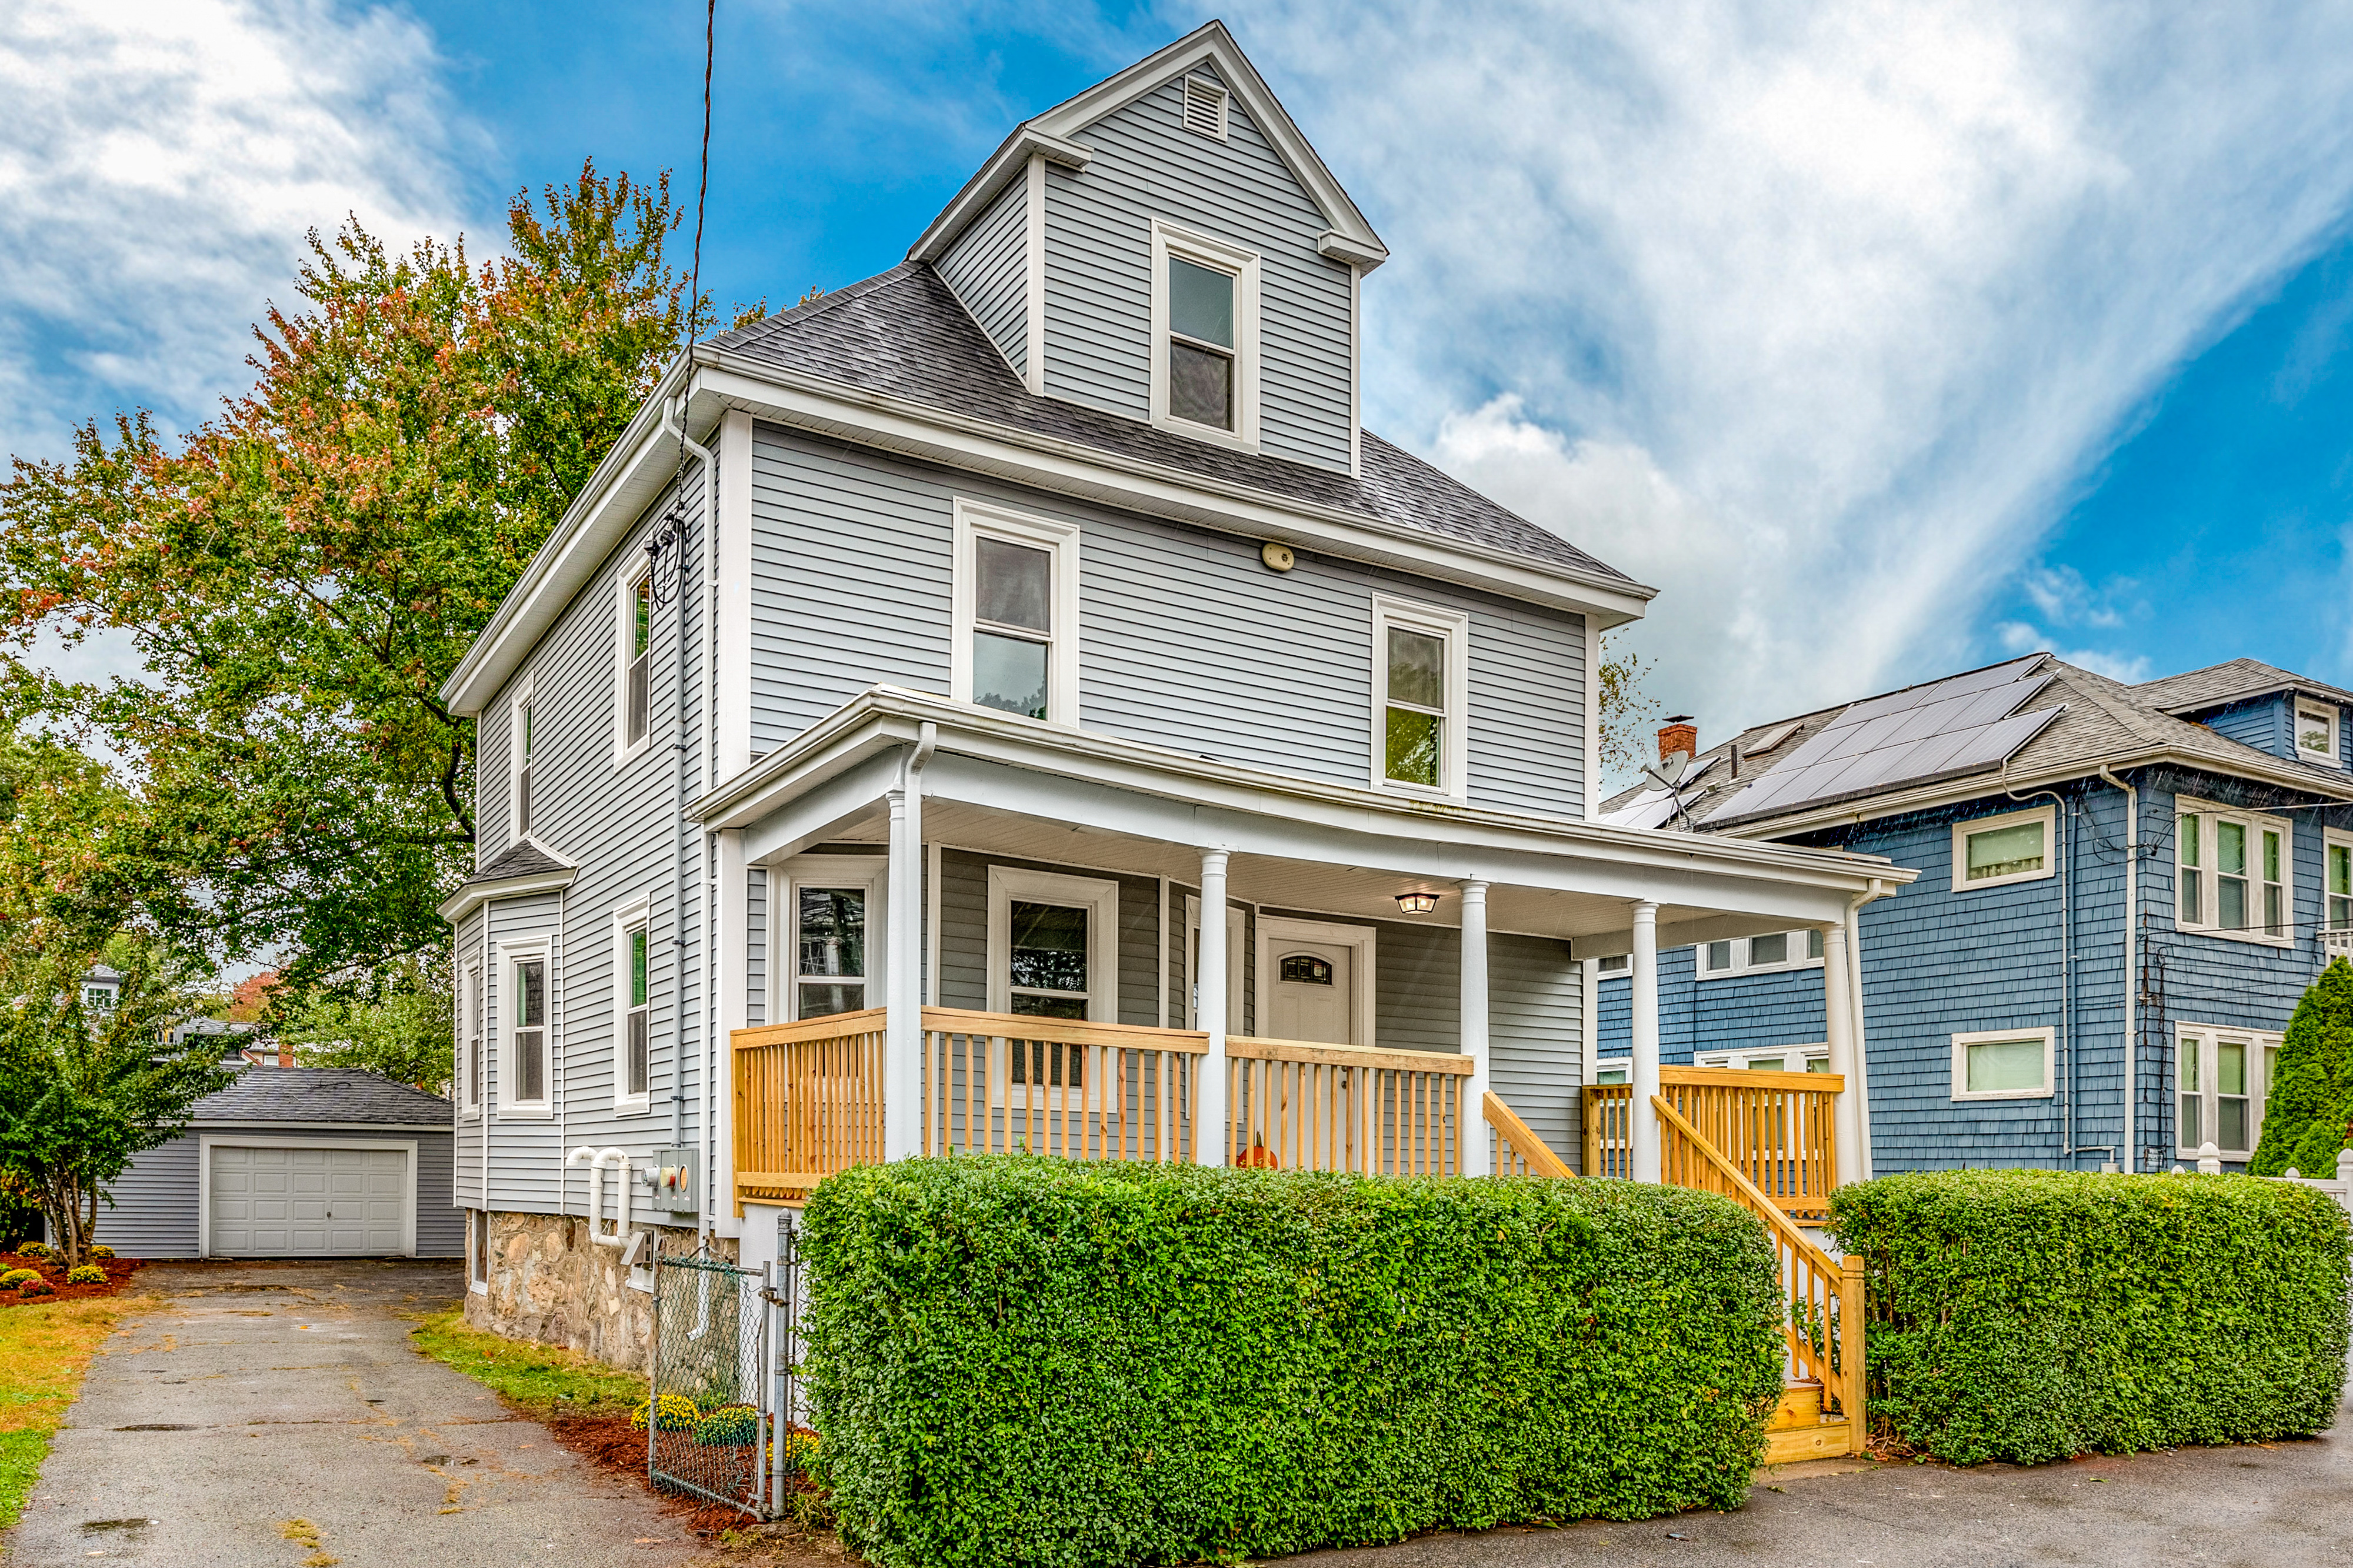 25 Weybosset Street Hyde Park MA 02136 - Vital Source Realty - For Sale - #Realtor #ZillowBoston #BestRealtorNearMe